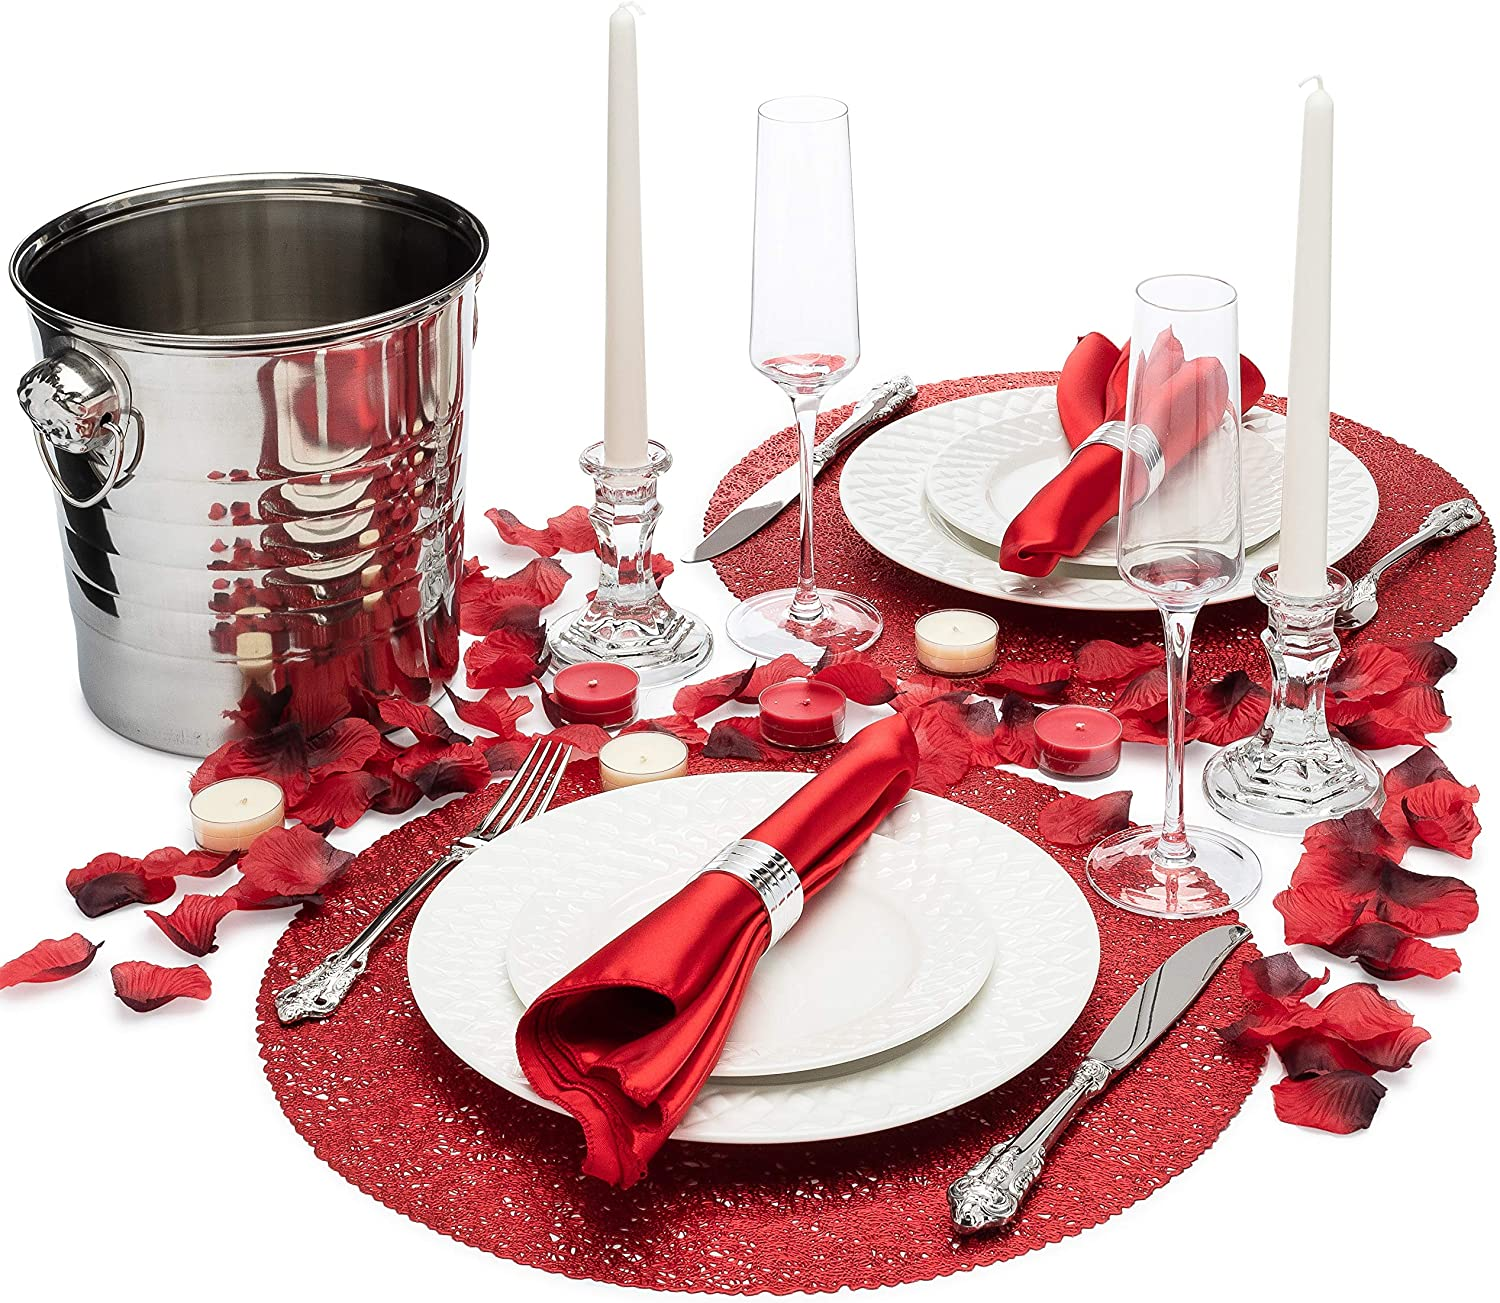 Amazon Com Romantic Dinner Set For Two Romantic Decorations Special Night Romantic Candles Rose Petals And Plates Home Kitchen